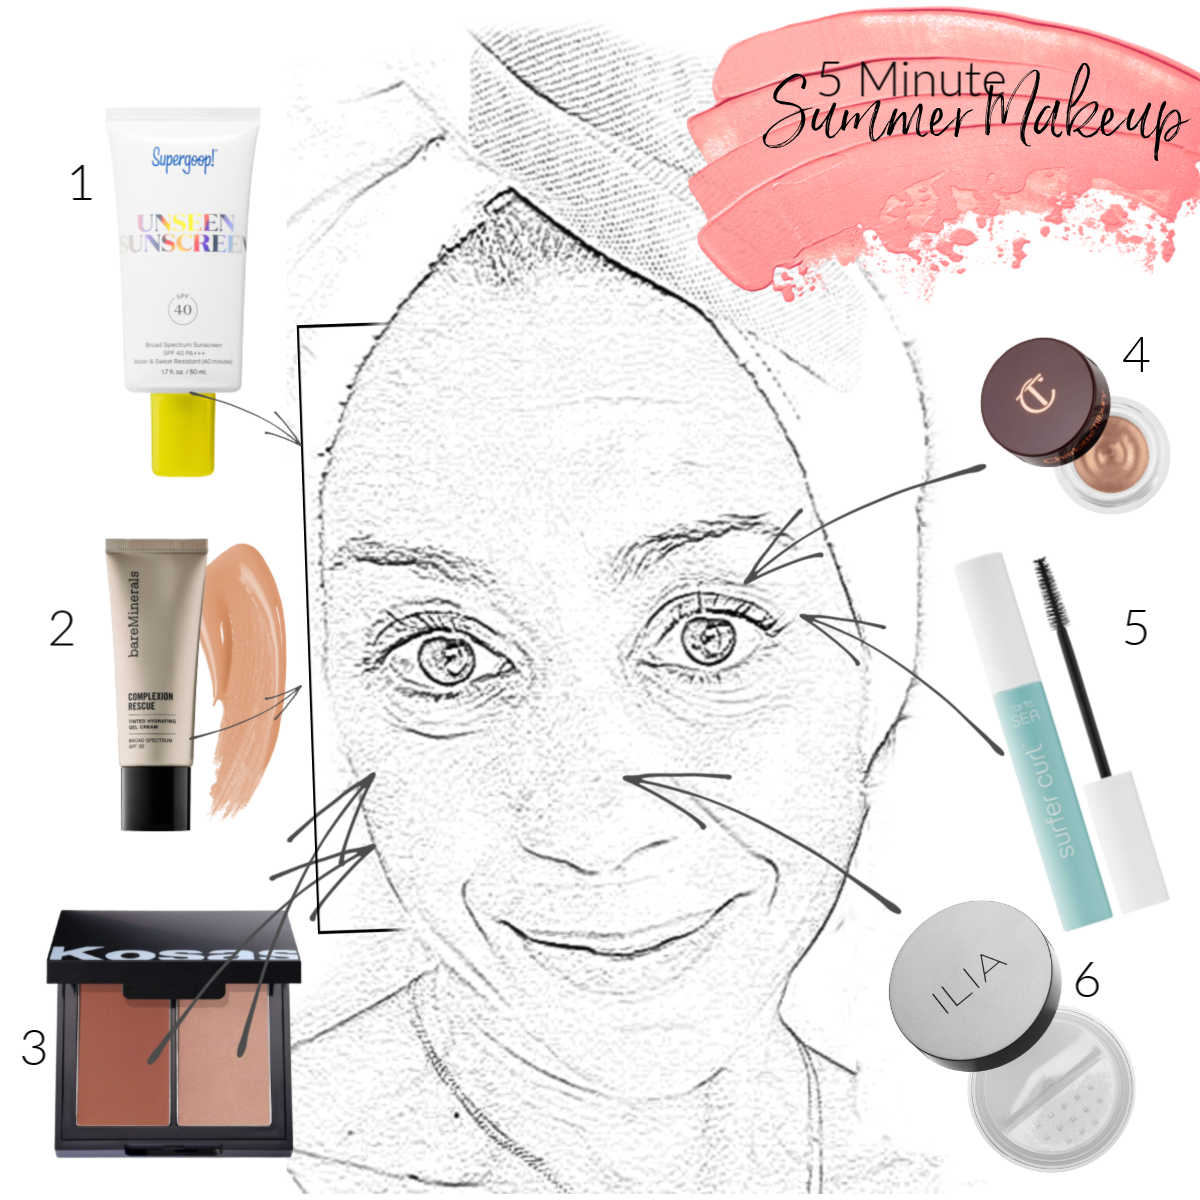 The motherchic 5 minute make up